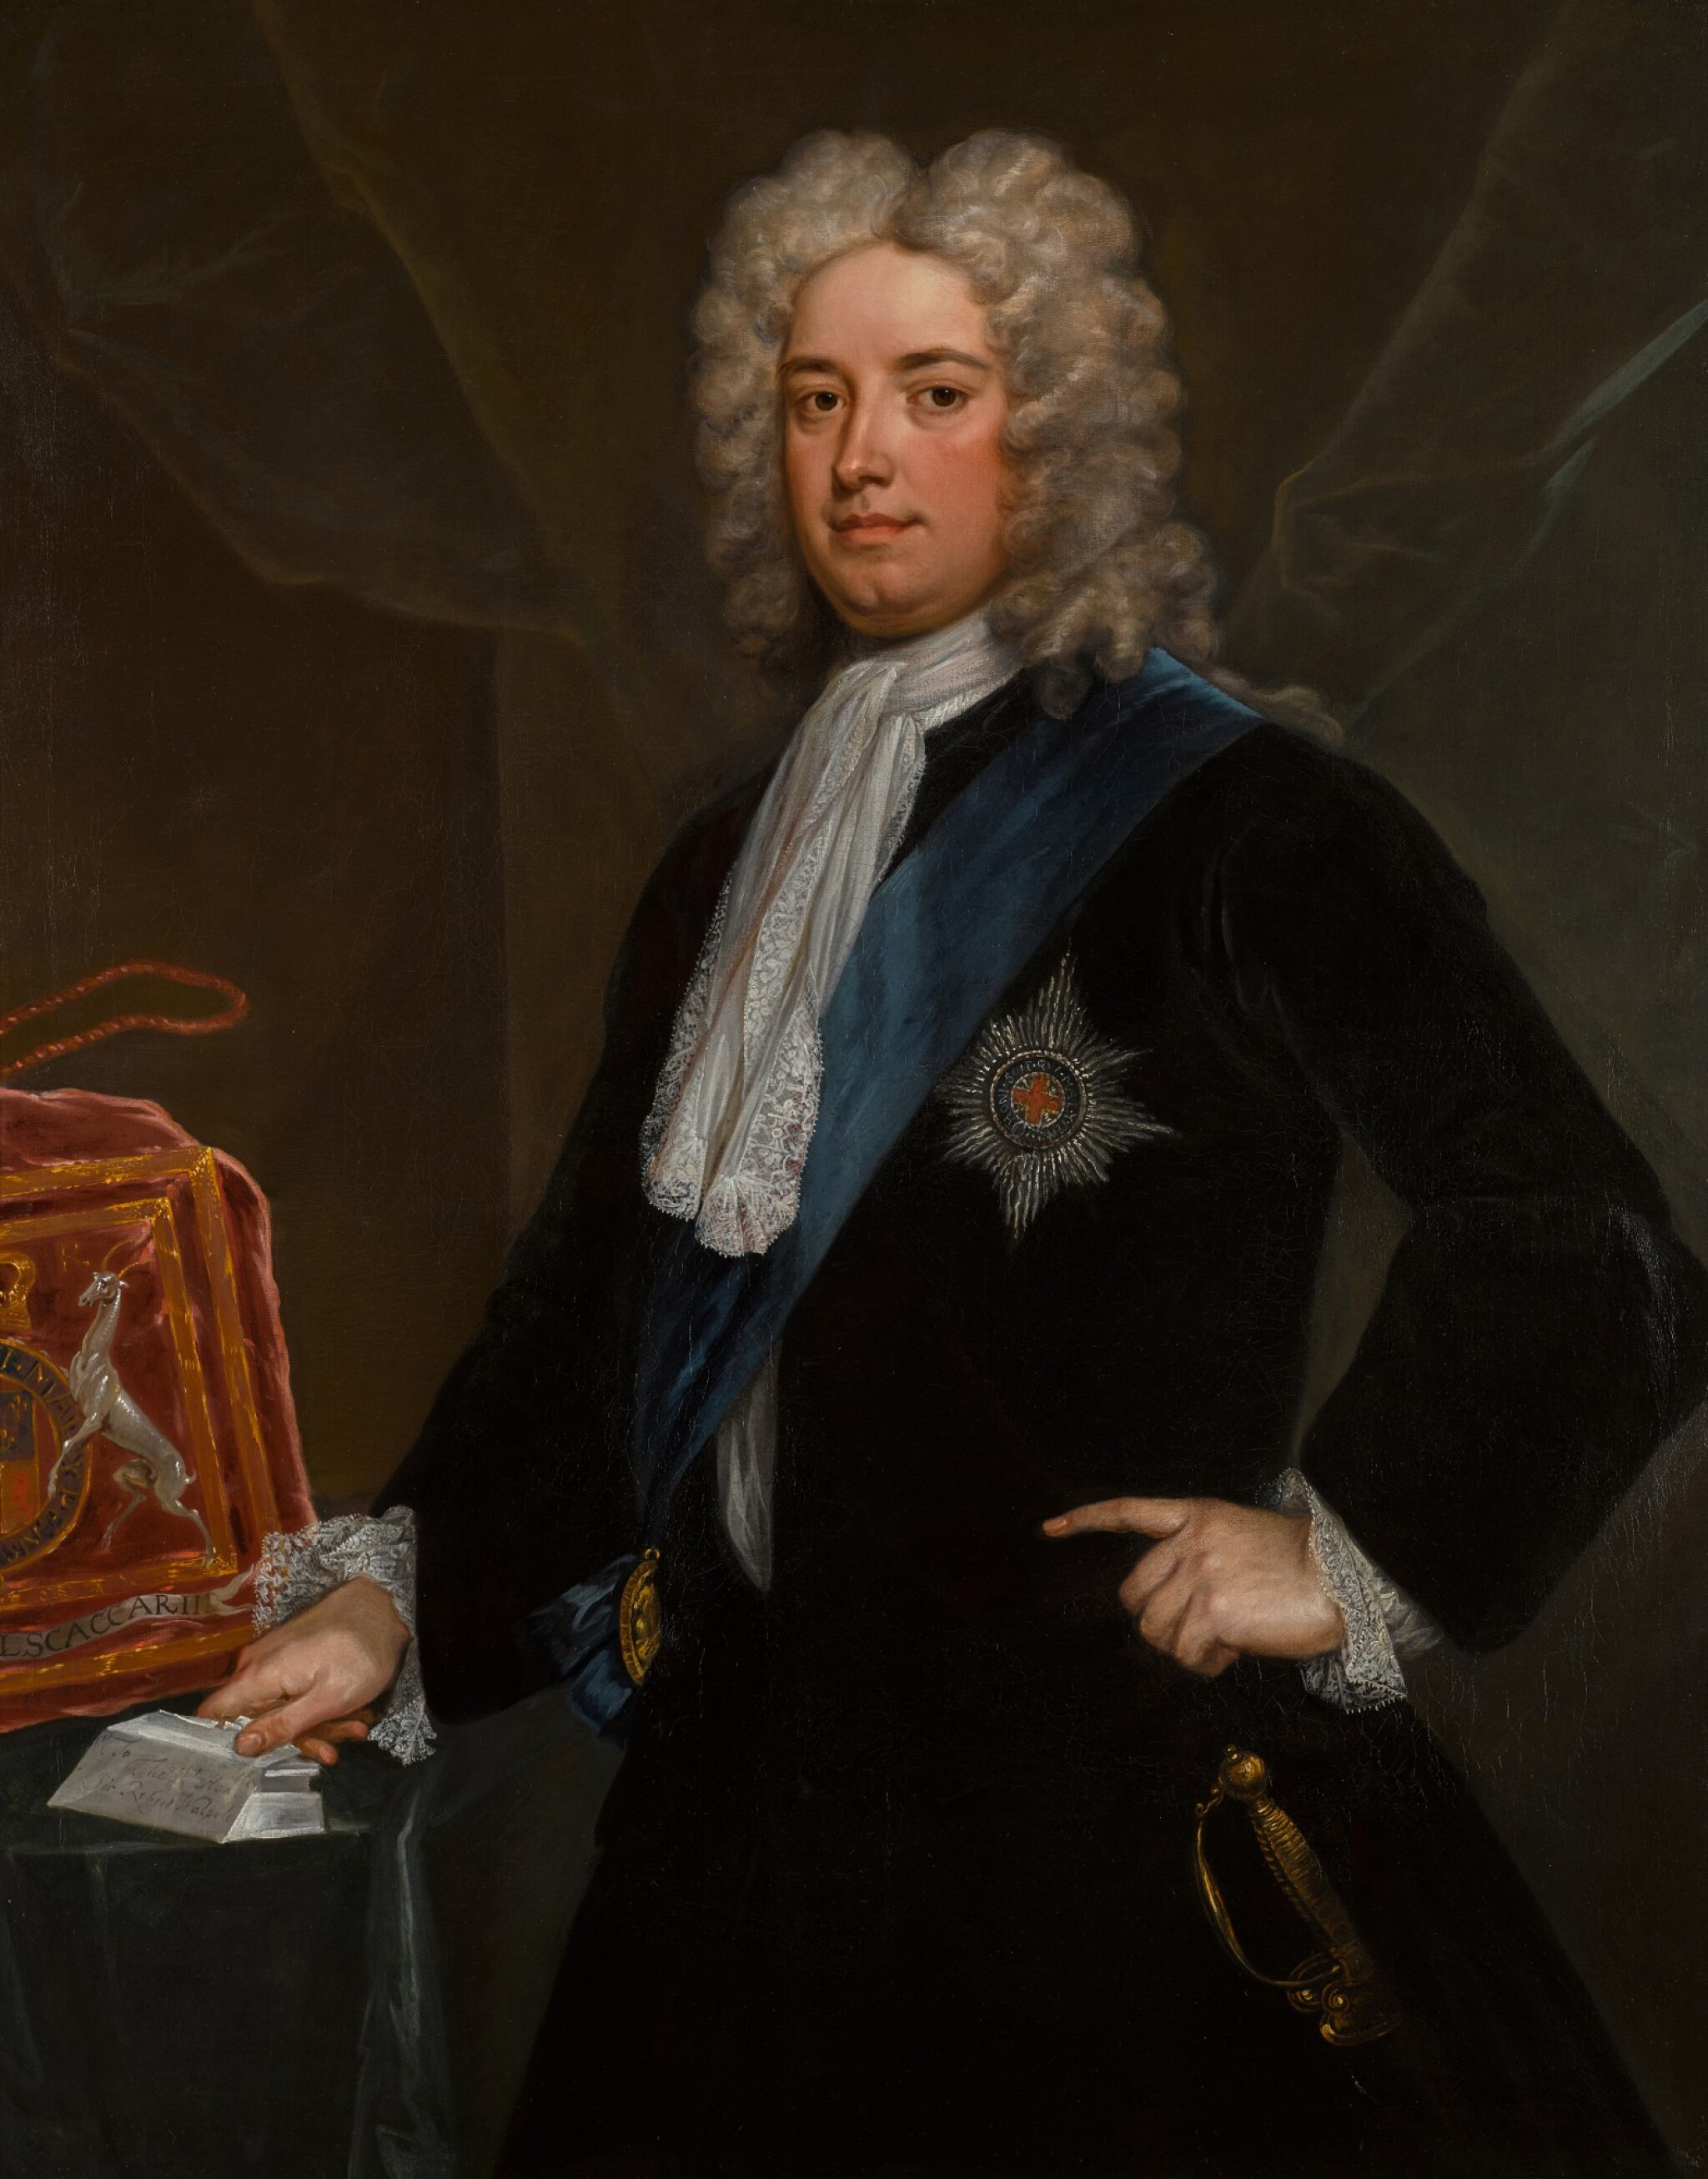 View full screen - View 1 of Lot 190. Portrait of Sir Robert Walpole, 1st Earl of Orford (1676-1745) as Chancellor of the Exchequer, standing three-quarter-length, in a black velvet coat, wearing the Star and Riband of the Order of the Garter.